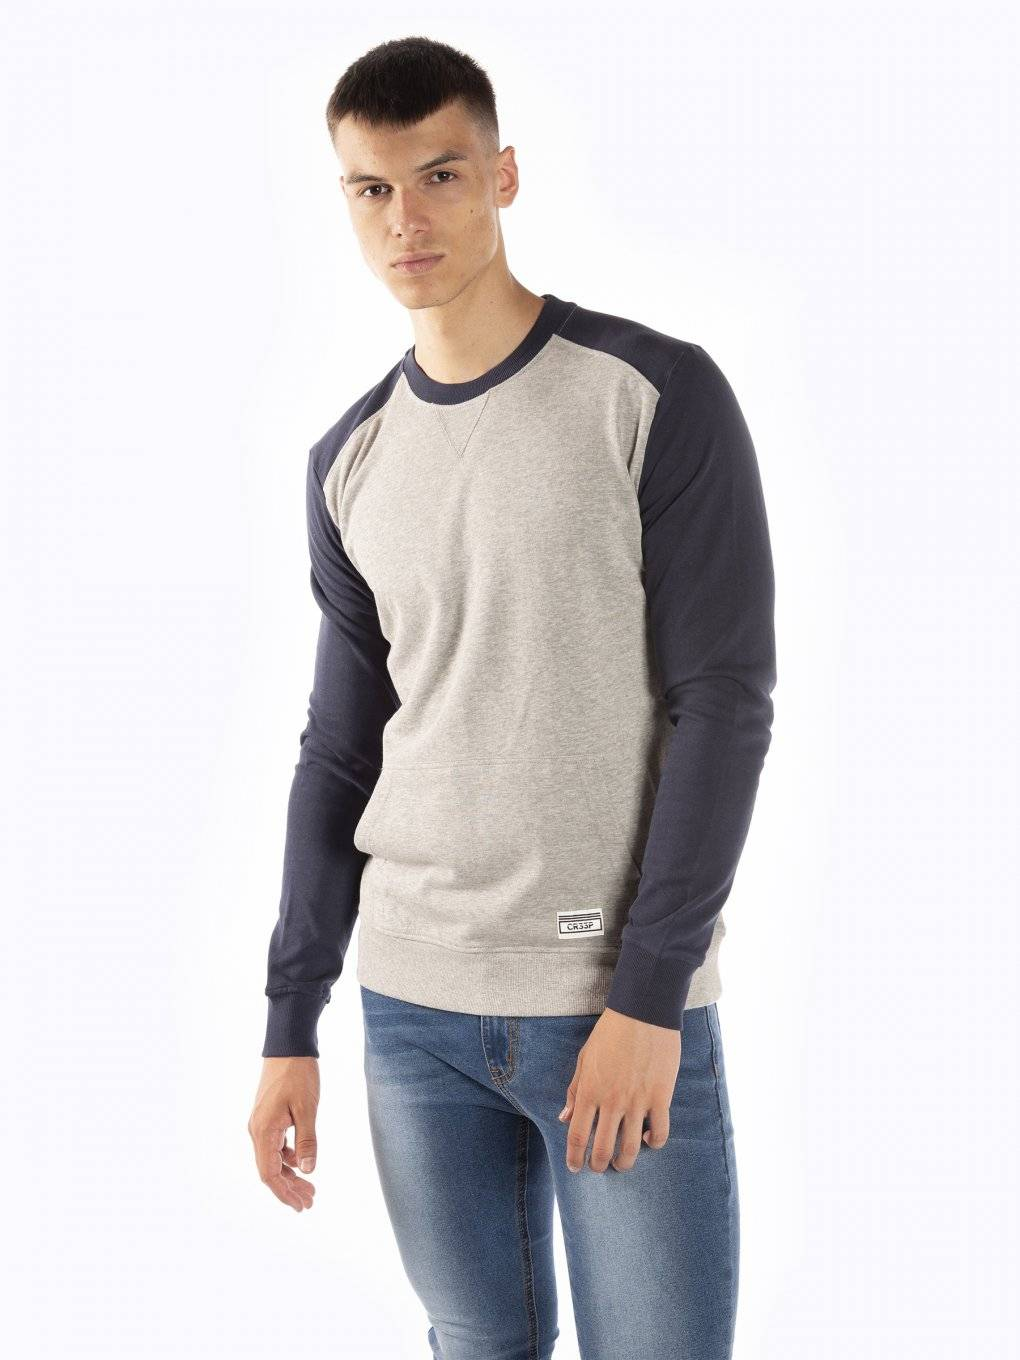 Sweatshirt with kangaroo pocket and contrast sleeves